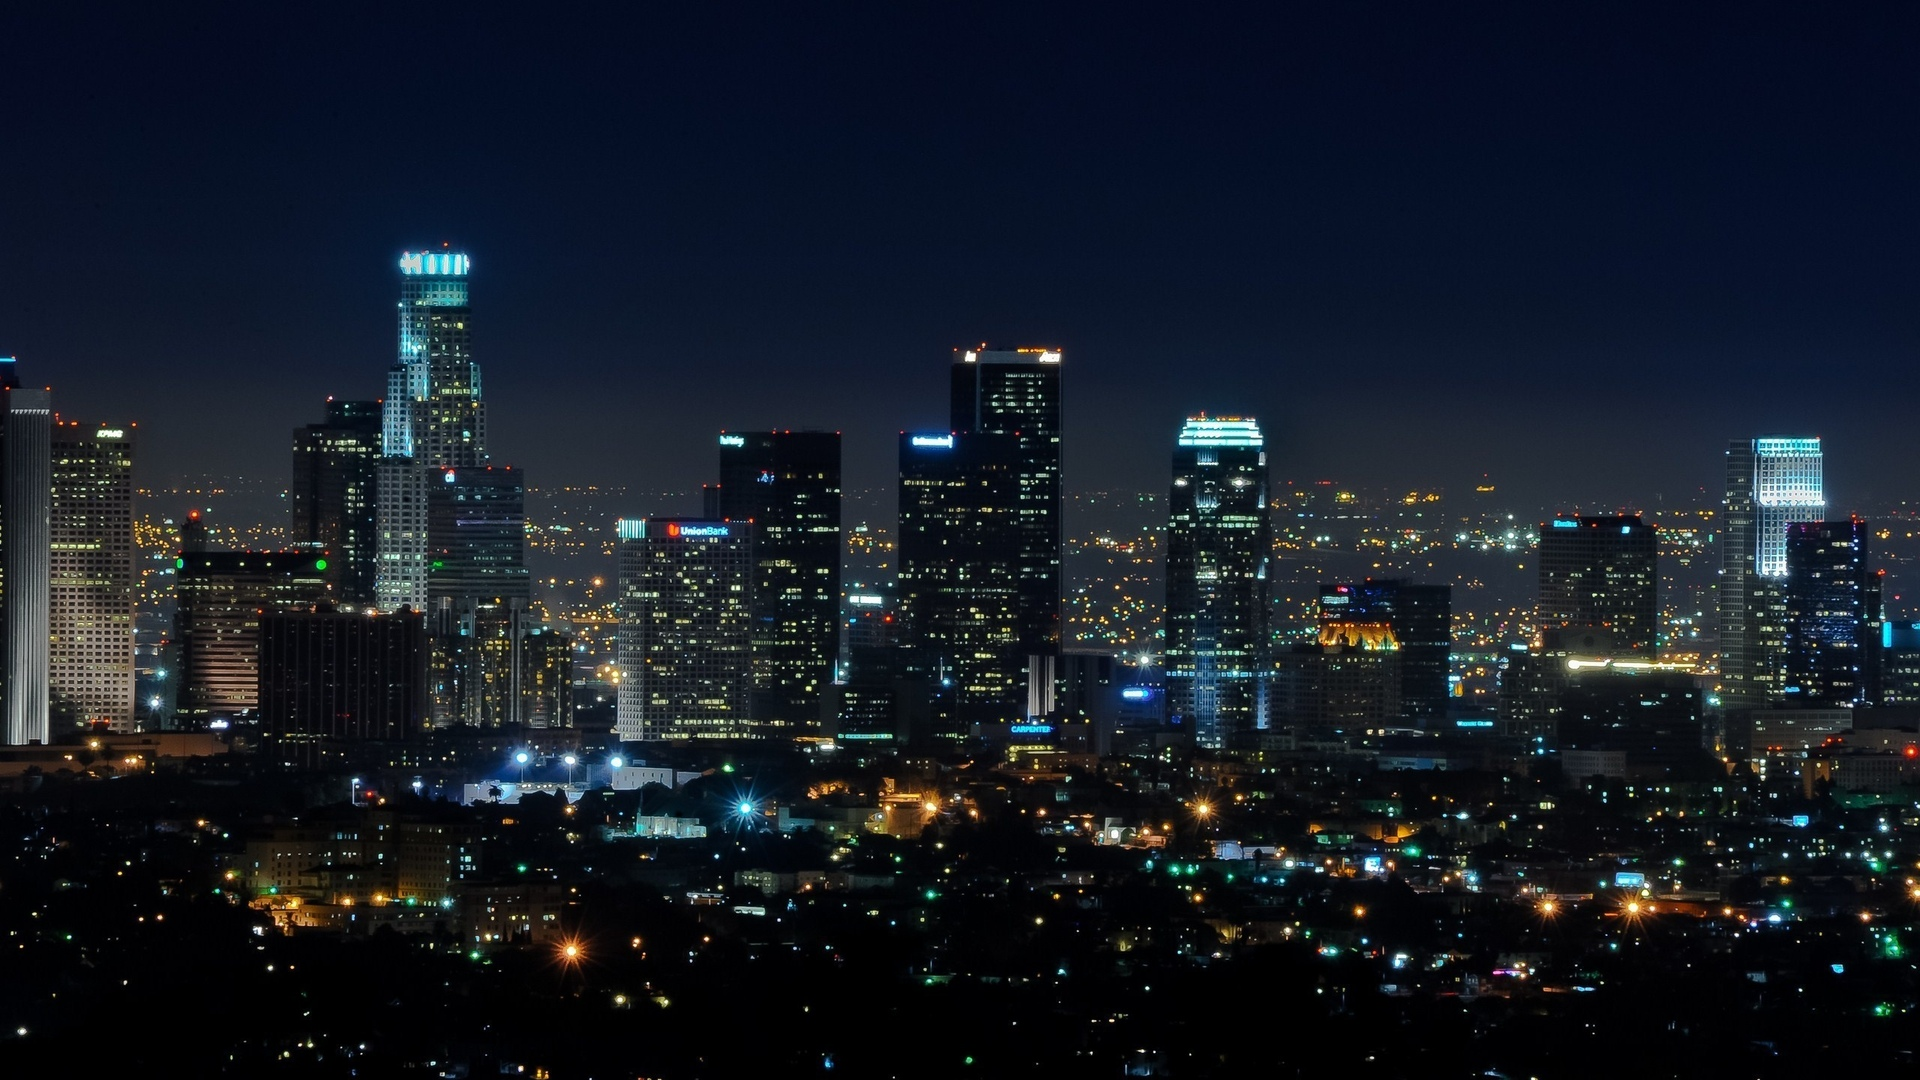 огни, ночь, usa, la, los angeles, southern california, downtown, night, california, калифорния